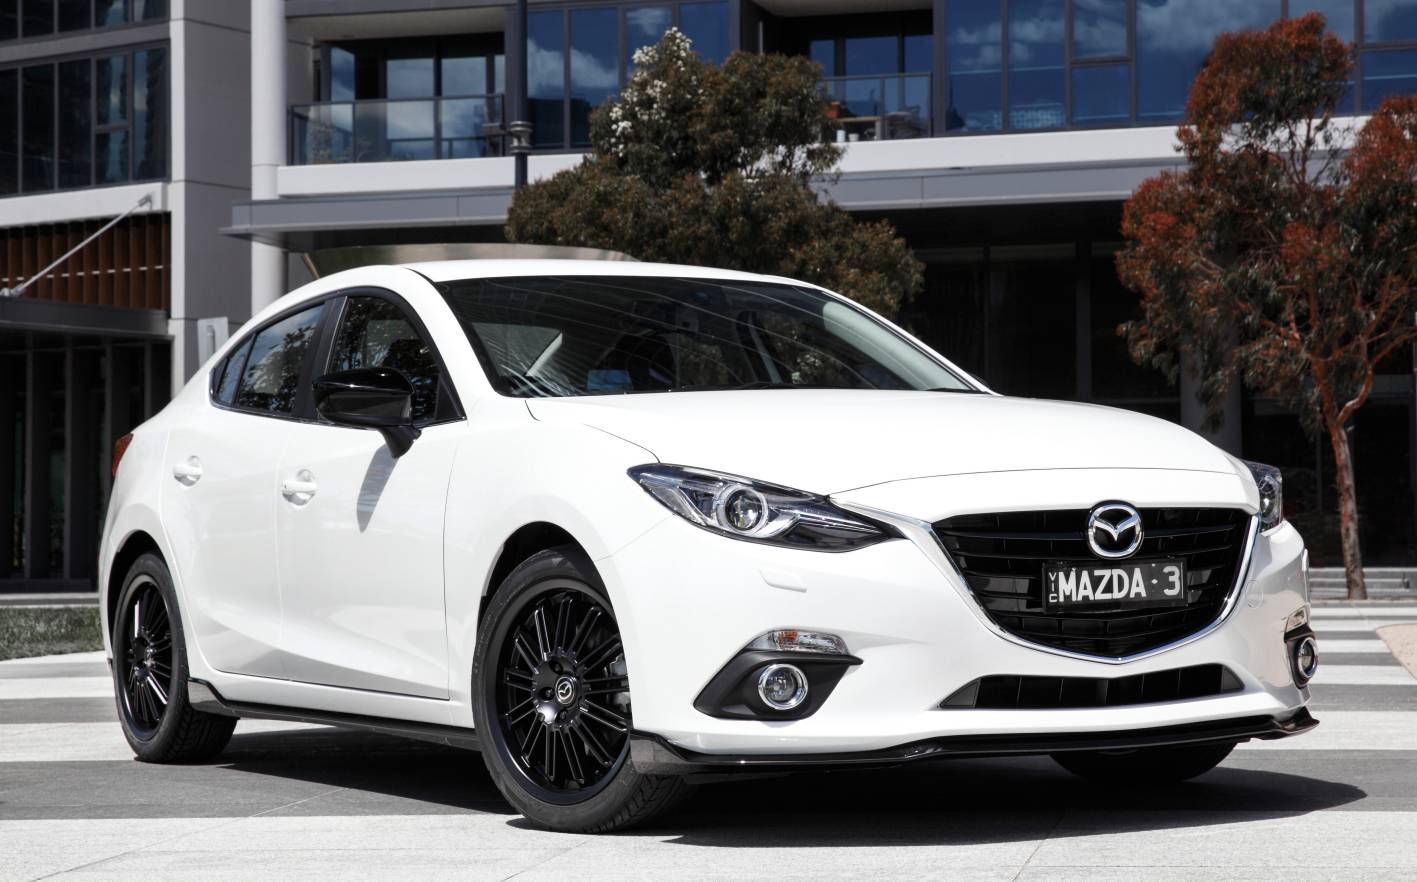 Mazda3 Vs Mazda6 >> Mazda Cars - News: 2014 Mazda3 launched from $20,490